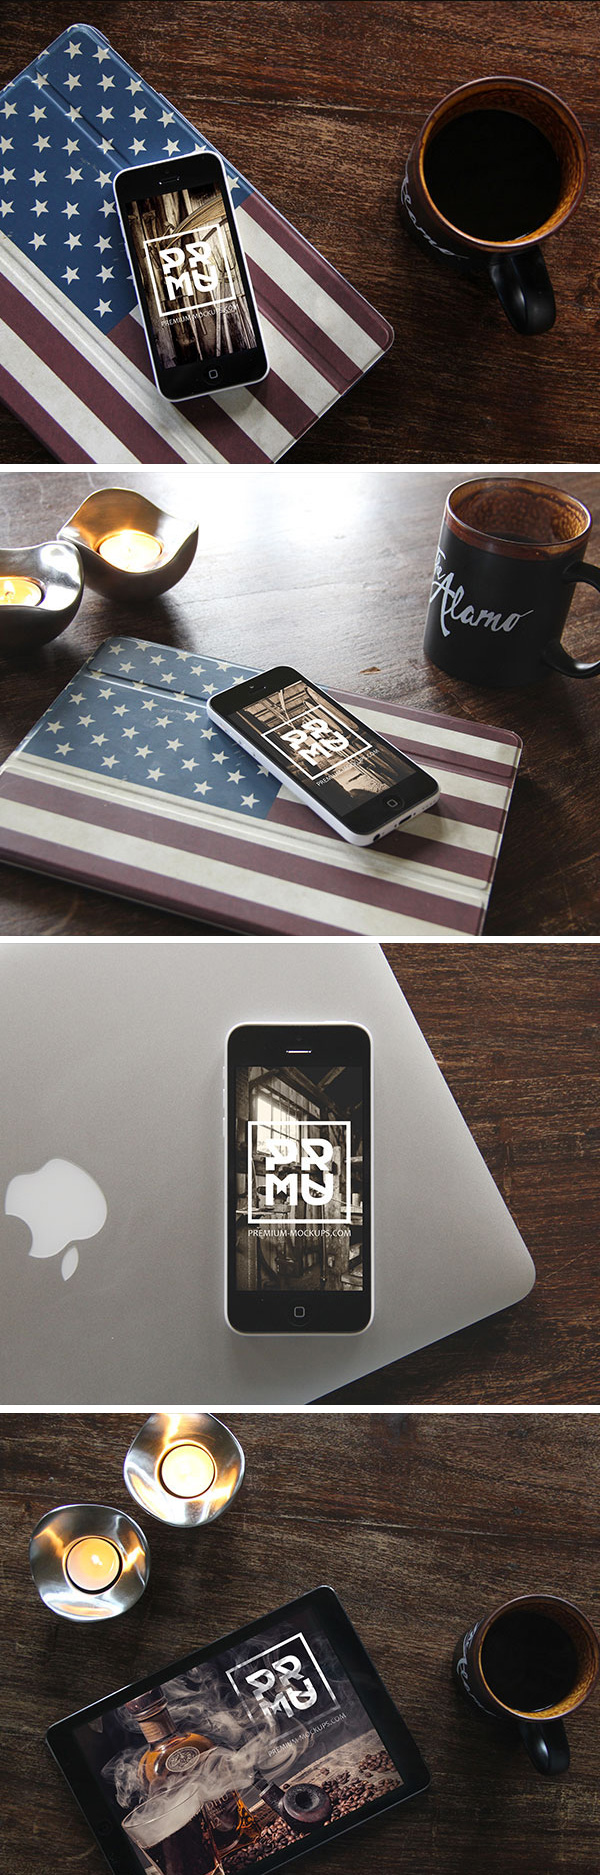 Mockup ipad y iphone